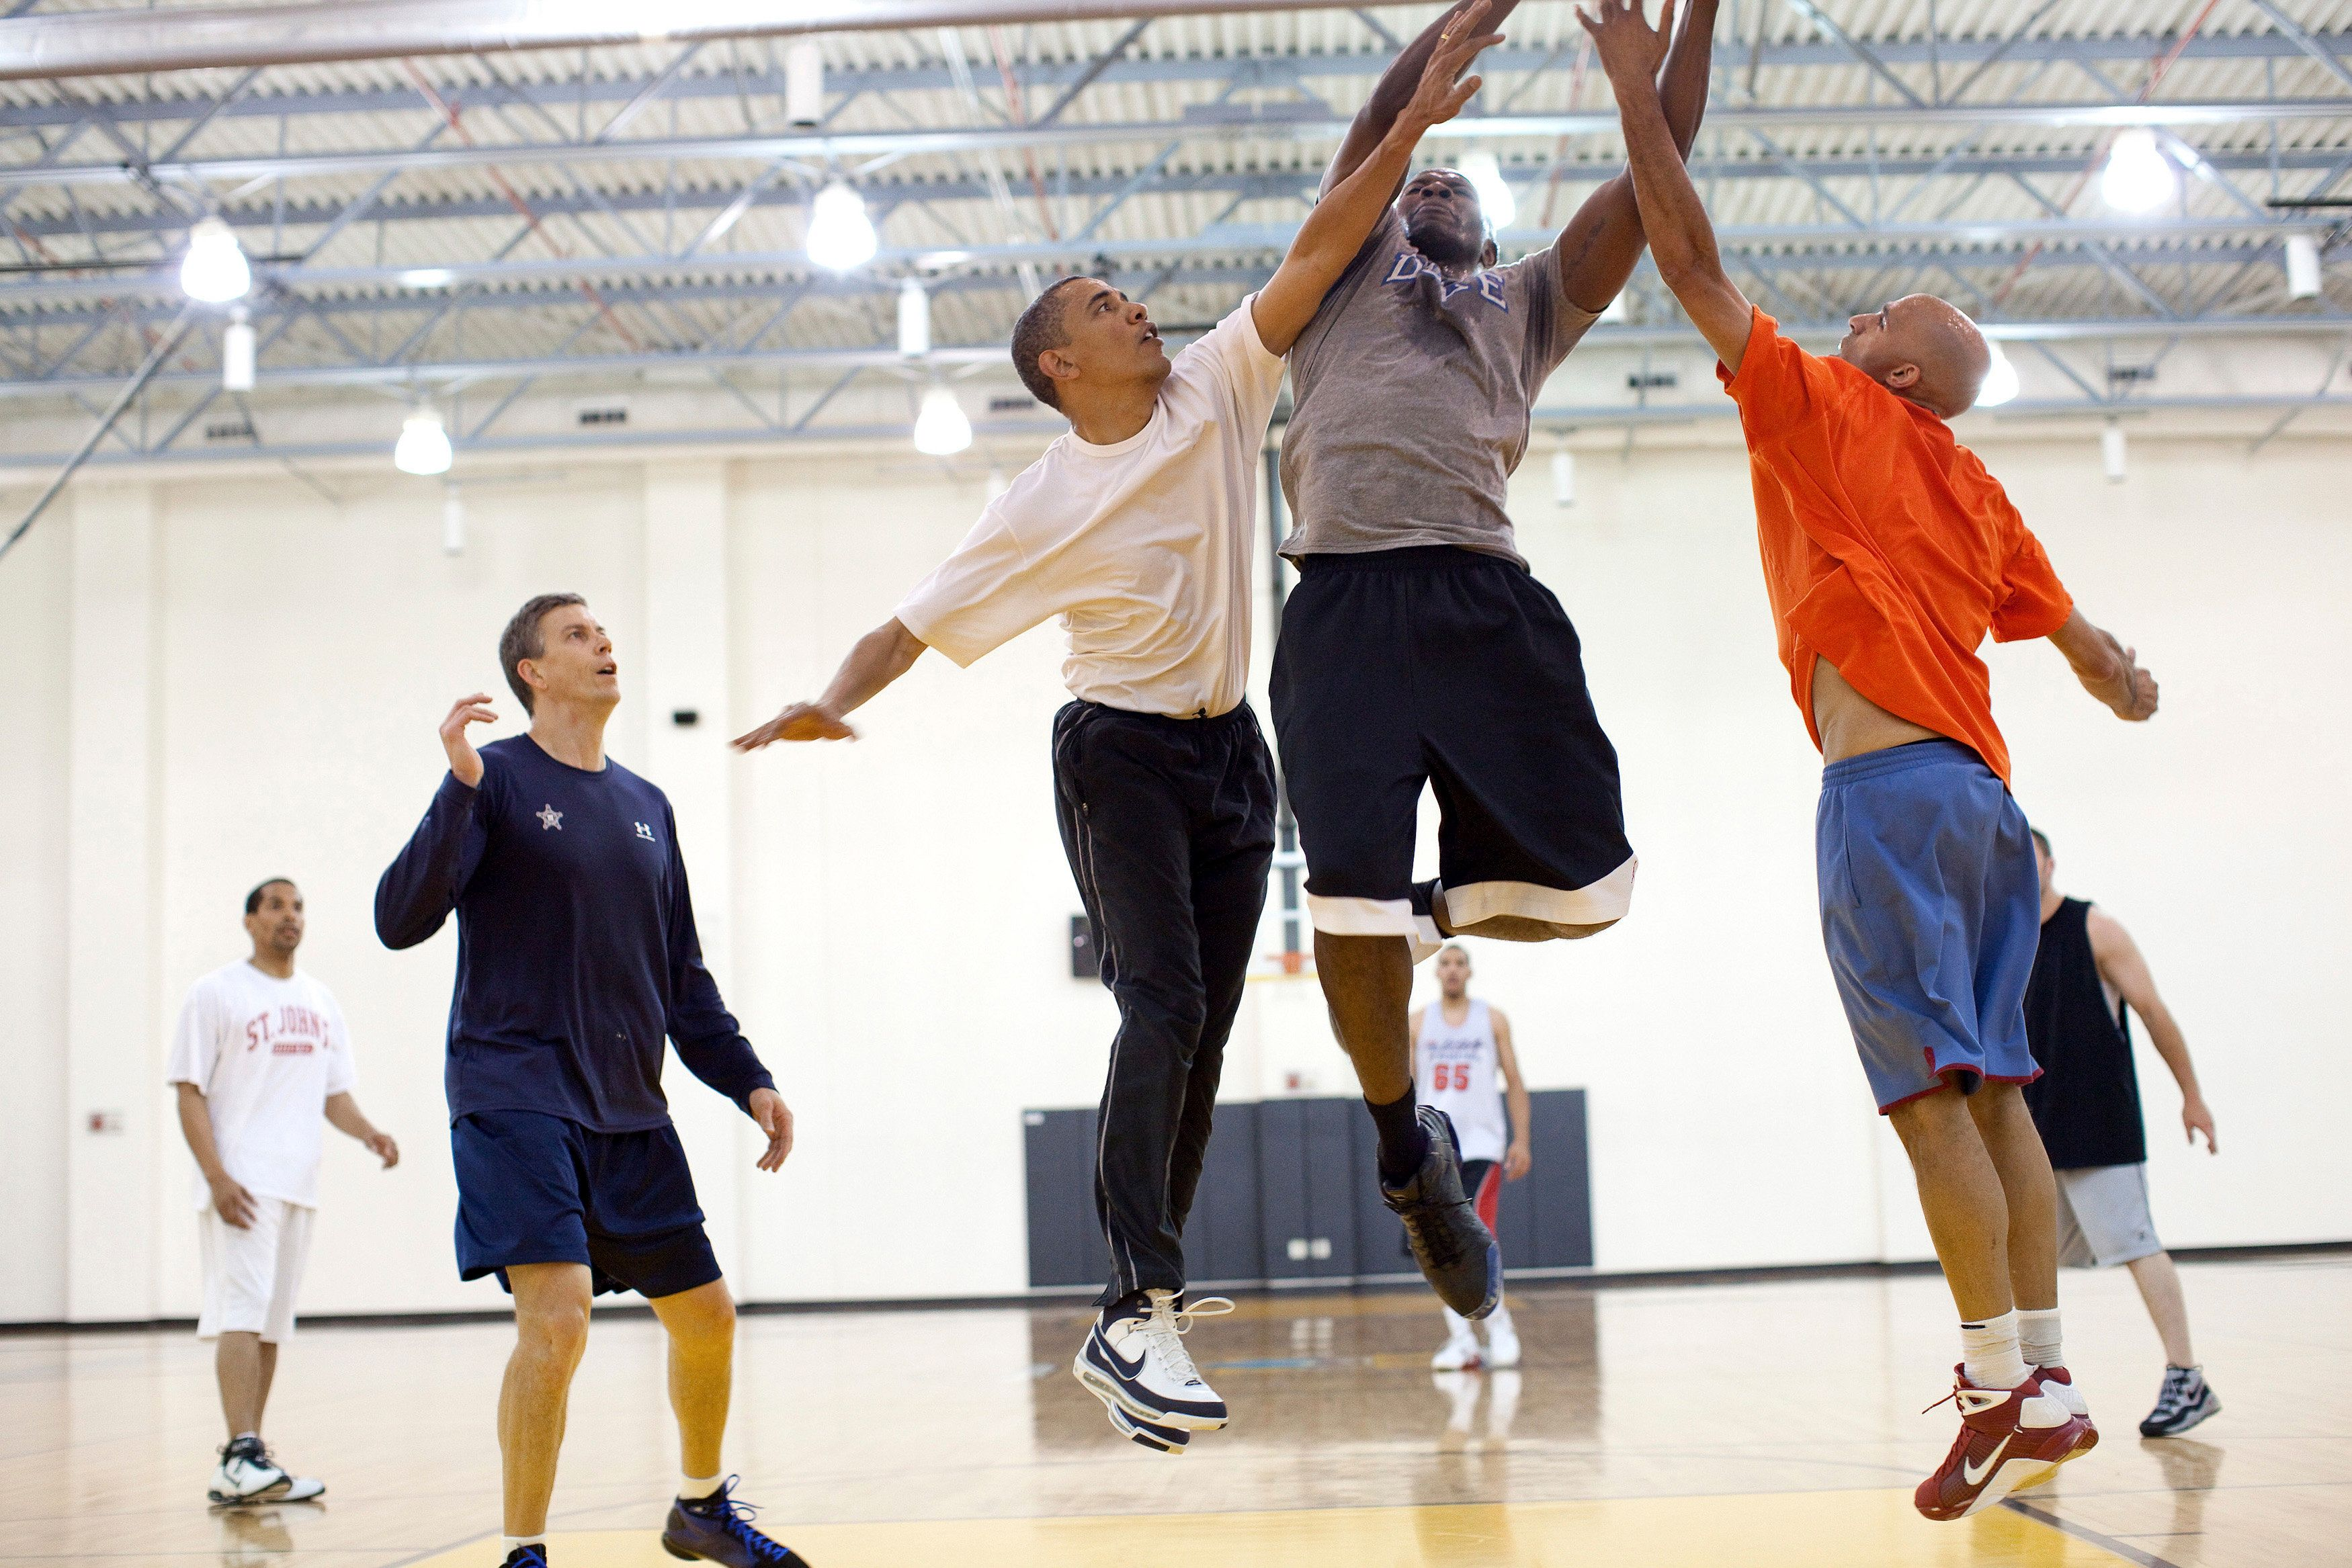 U.S. President Barack Obama (3rd L) attempts to block a shot by personal aide Reggie Love during a basketball game at Fort McNair in Washington, in this White House handout photograph taken on May 16, 2010 and released on June 7, 2010. REUTERS/Pete Souza/The White House (UNITED STATES - Tags: POLITICS) FOR EDITORIAL USE ONLY. NOT FOR SALE FOR MARKETING OR ADVERTISING CAMPAIGNS